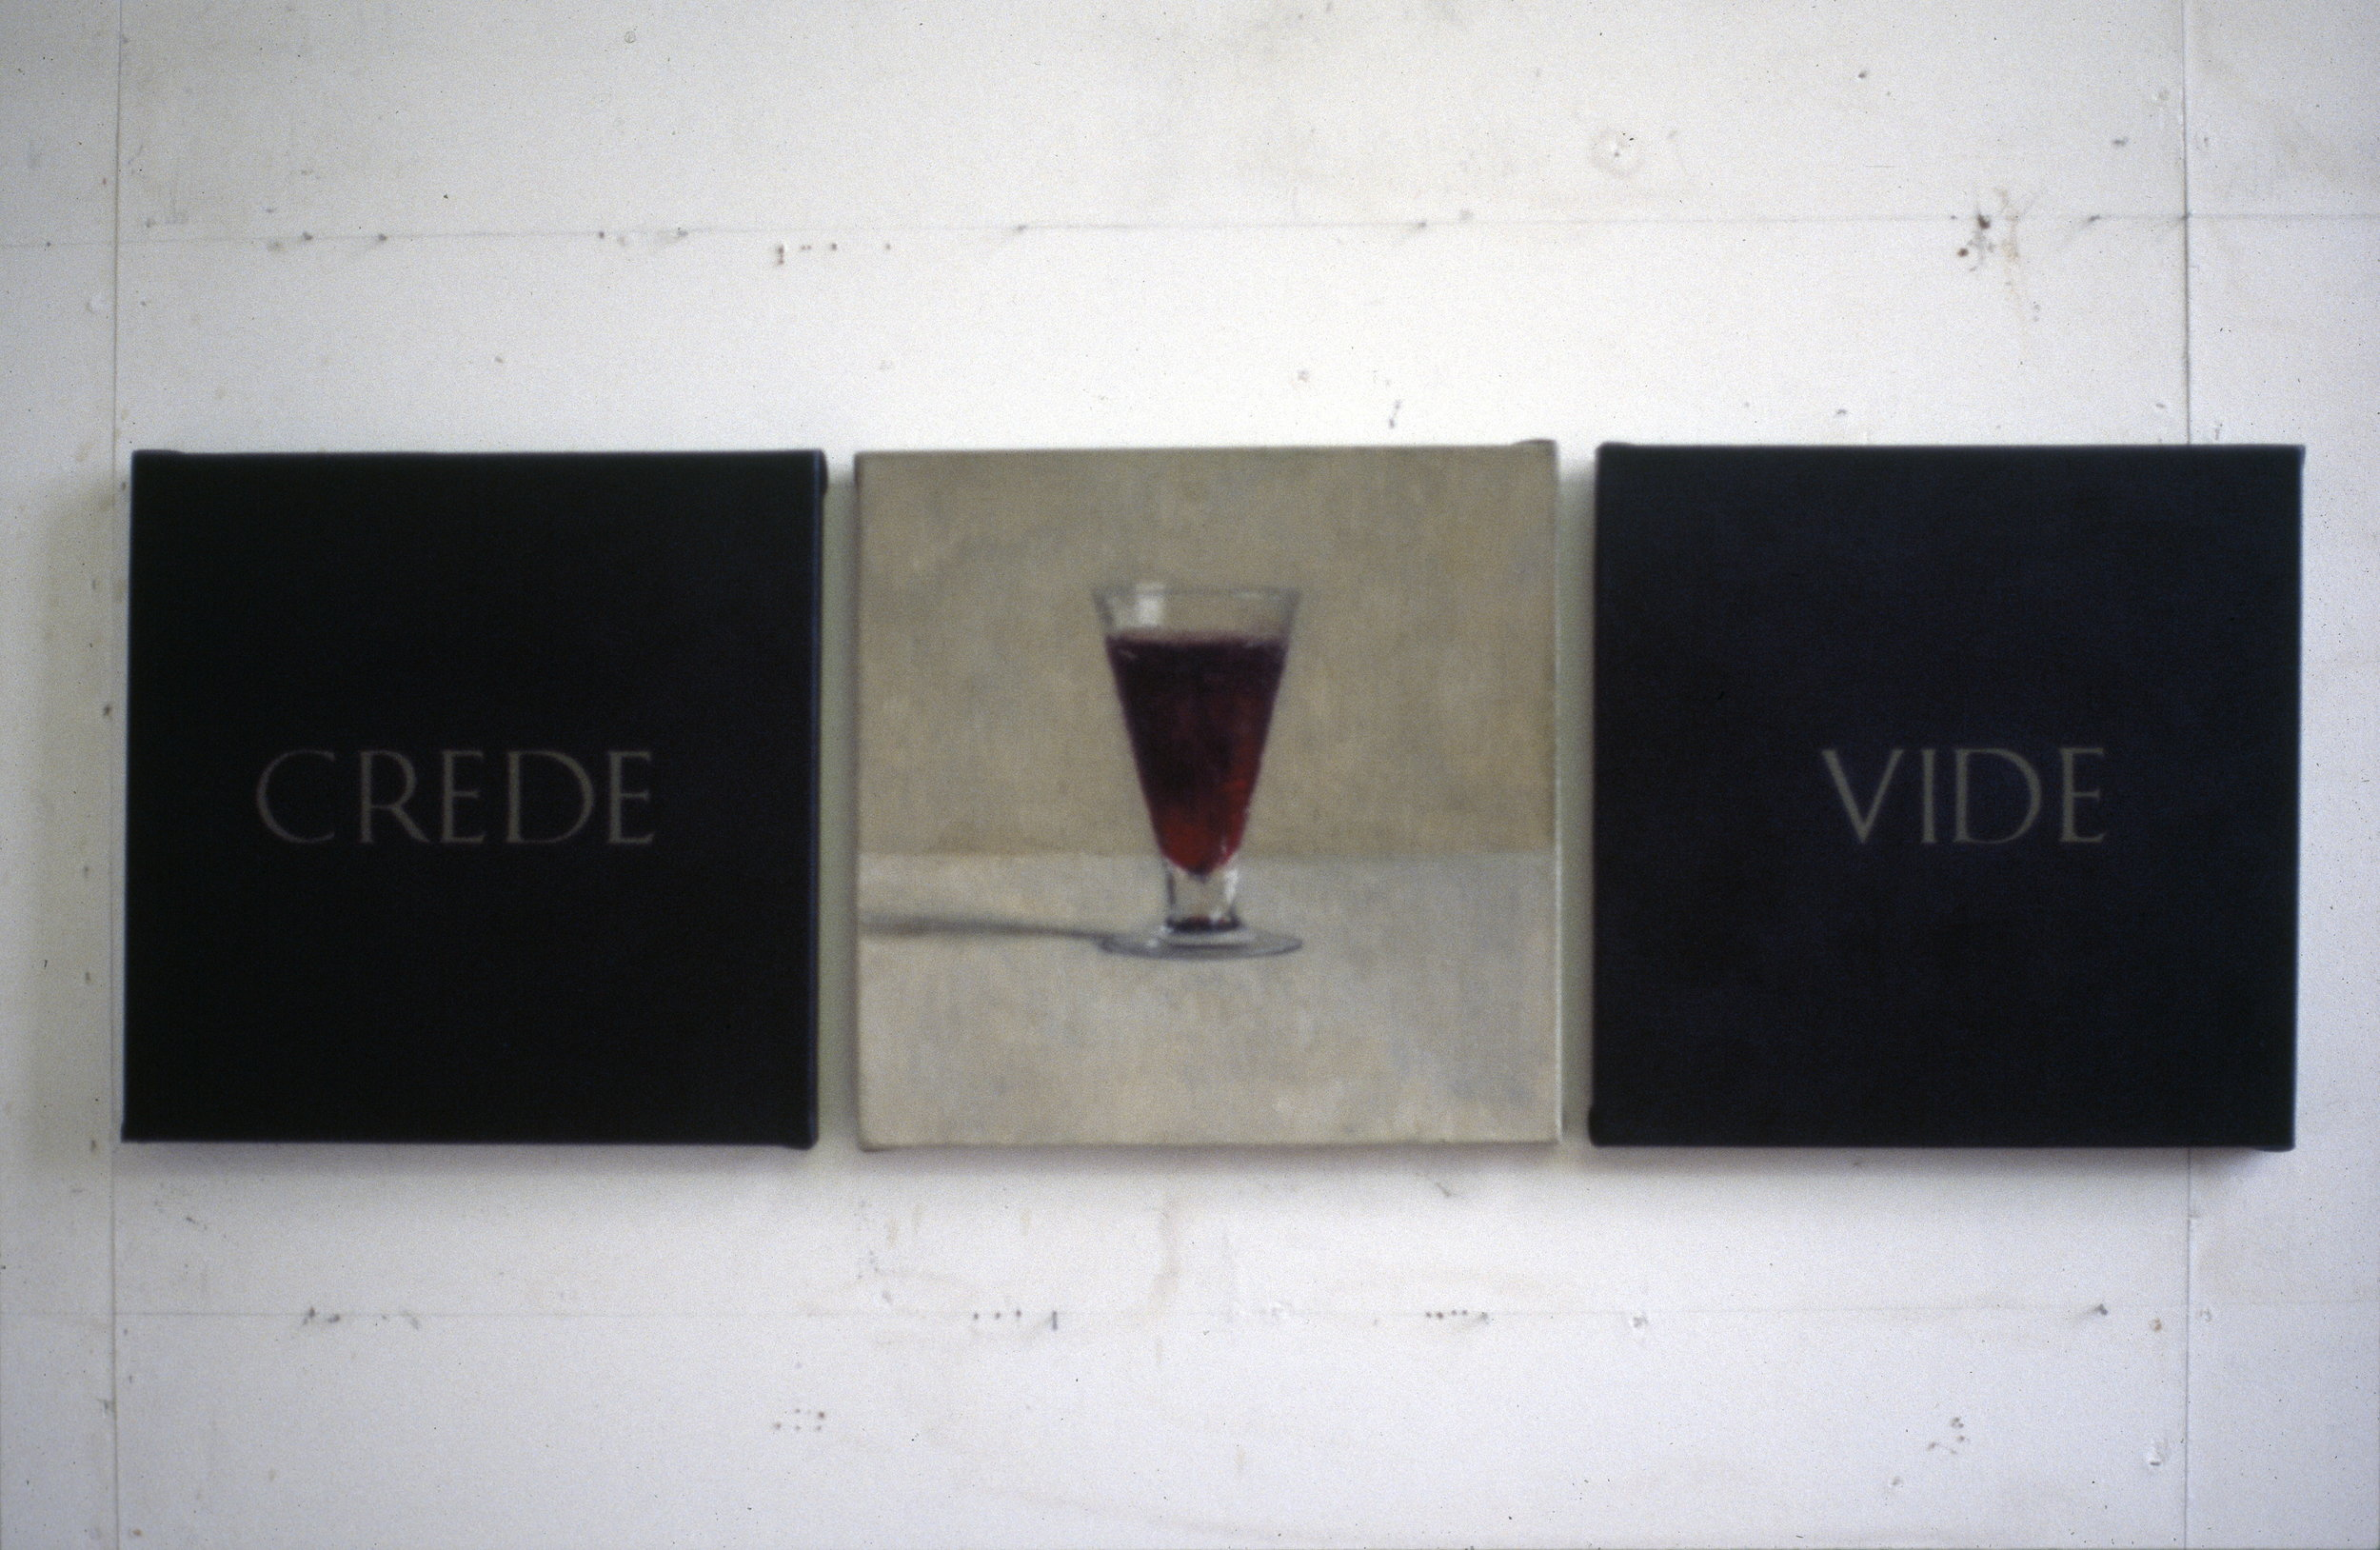 Crede Vide (You see what you believe), 1990.jpg